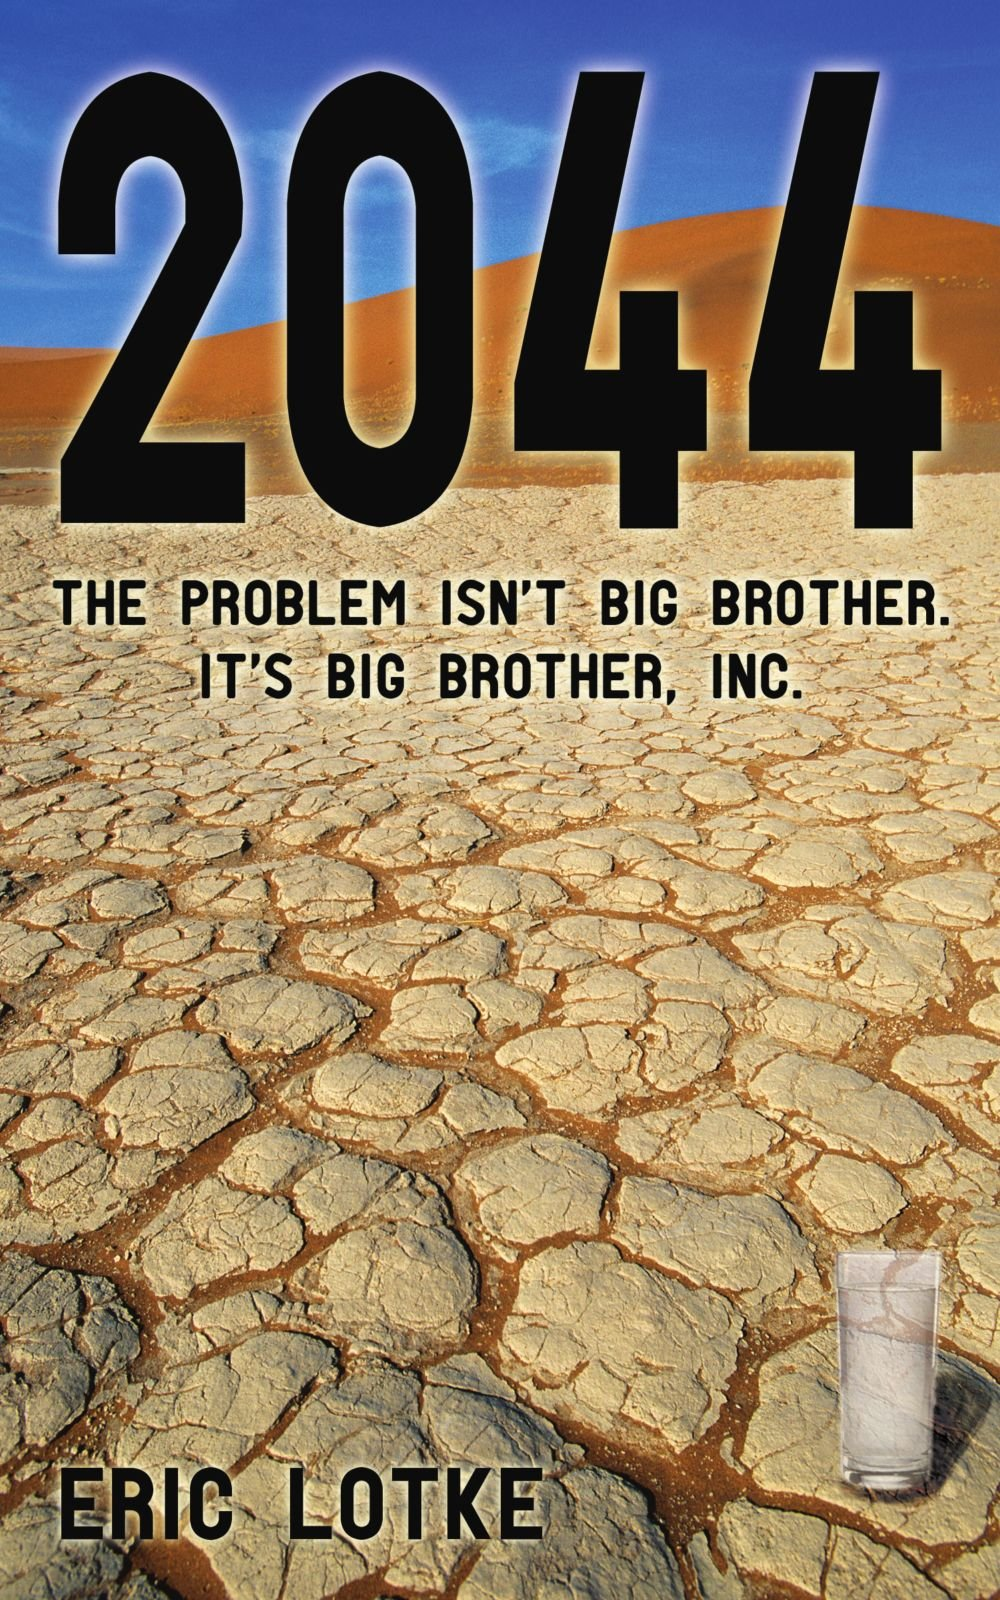 2044: The Problem isn't Big Brother. It's Big Brother, Inc.: Eric Lotke:  9781440134715: Amazon.com: Books